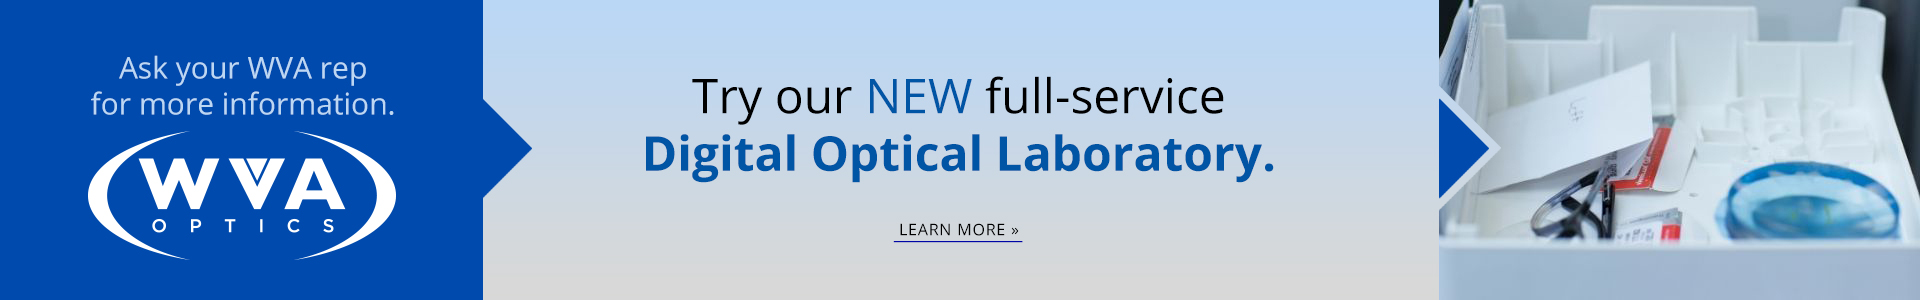 Wva optics lab banner